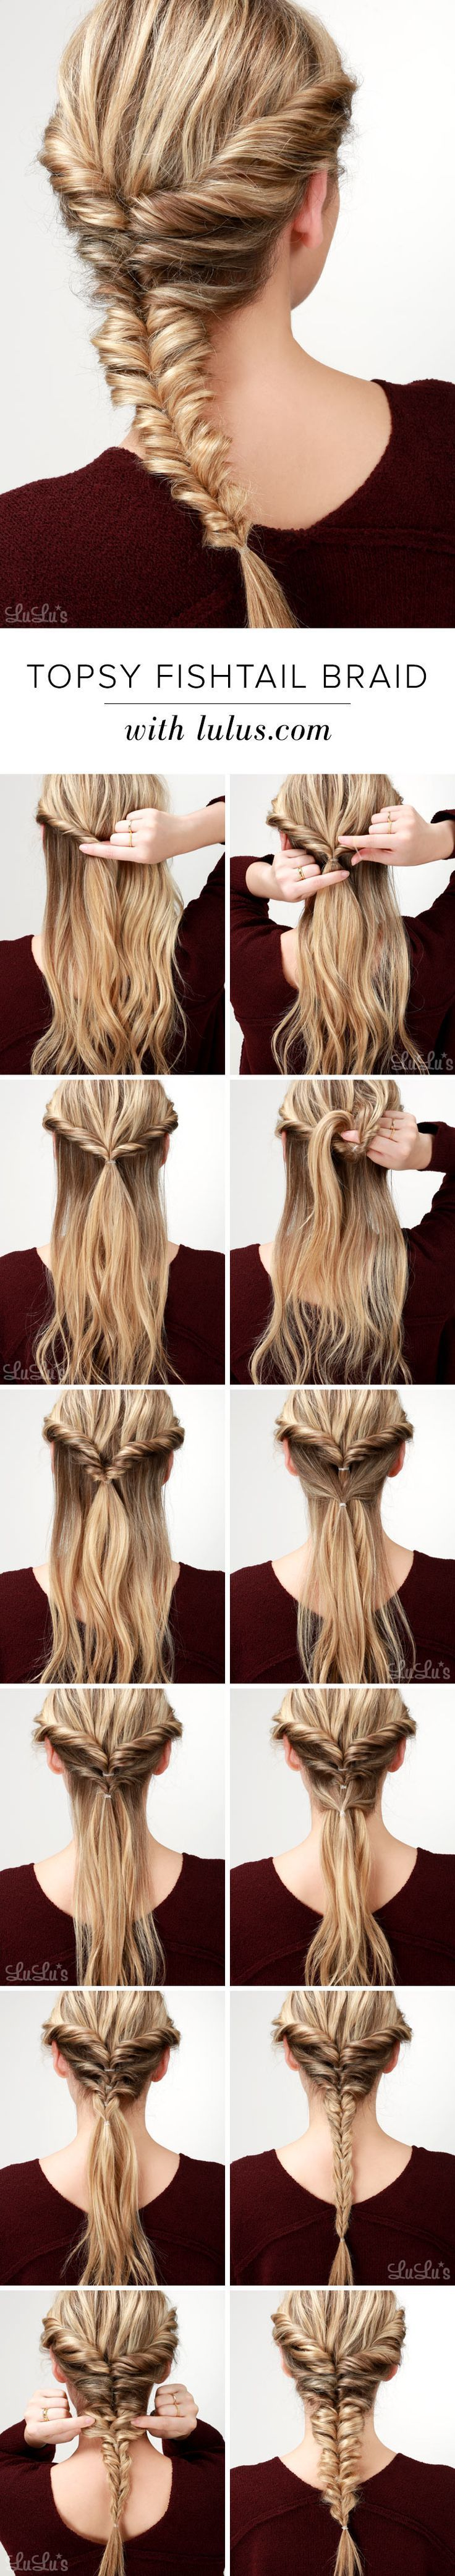 7 best Hairstylise images on Pinterest